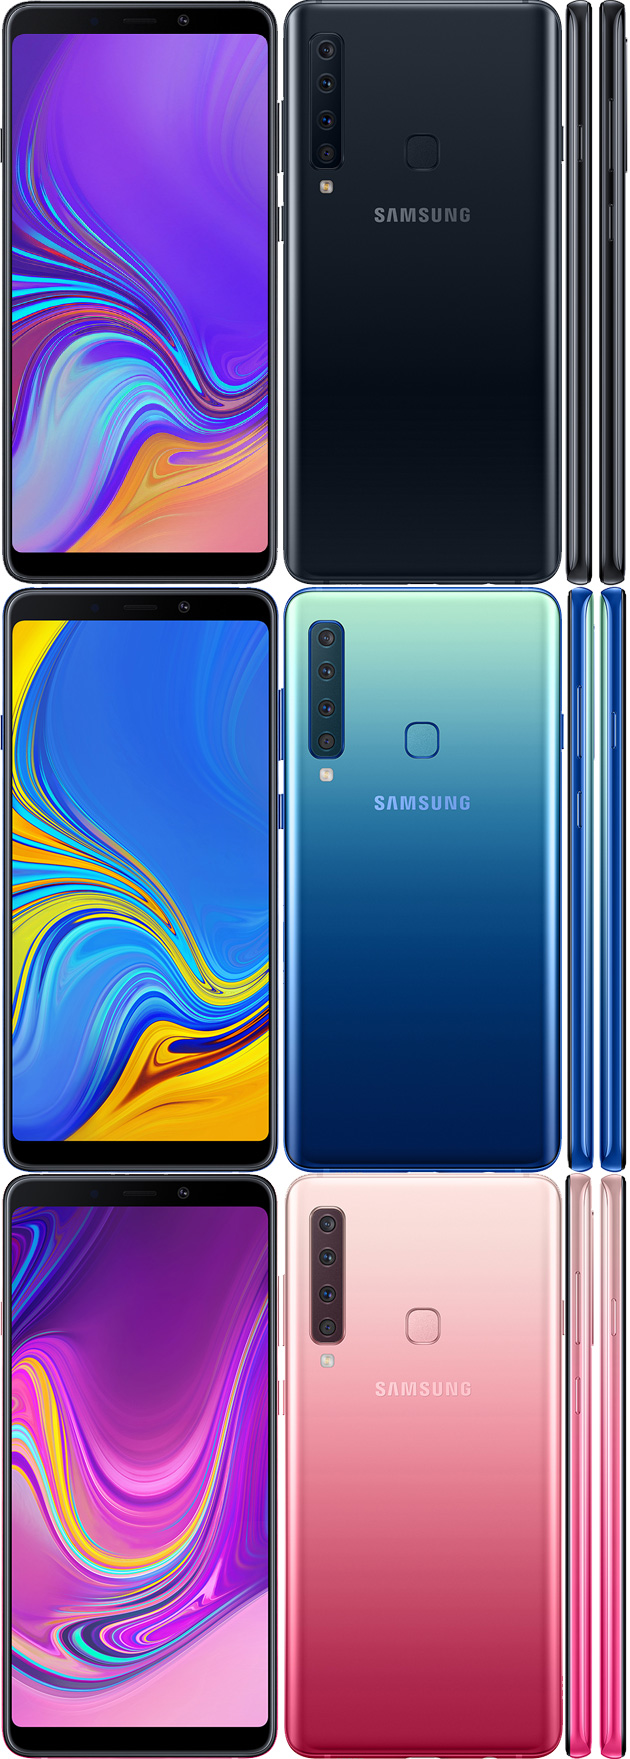 Samsung Galaxy A9 (2018) in Caviar Black, Lemonade Blue e Bubblegum Pink